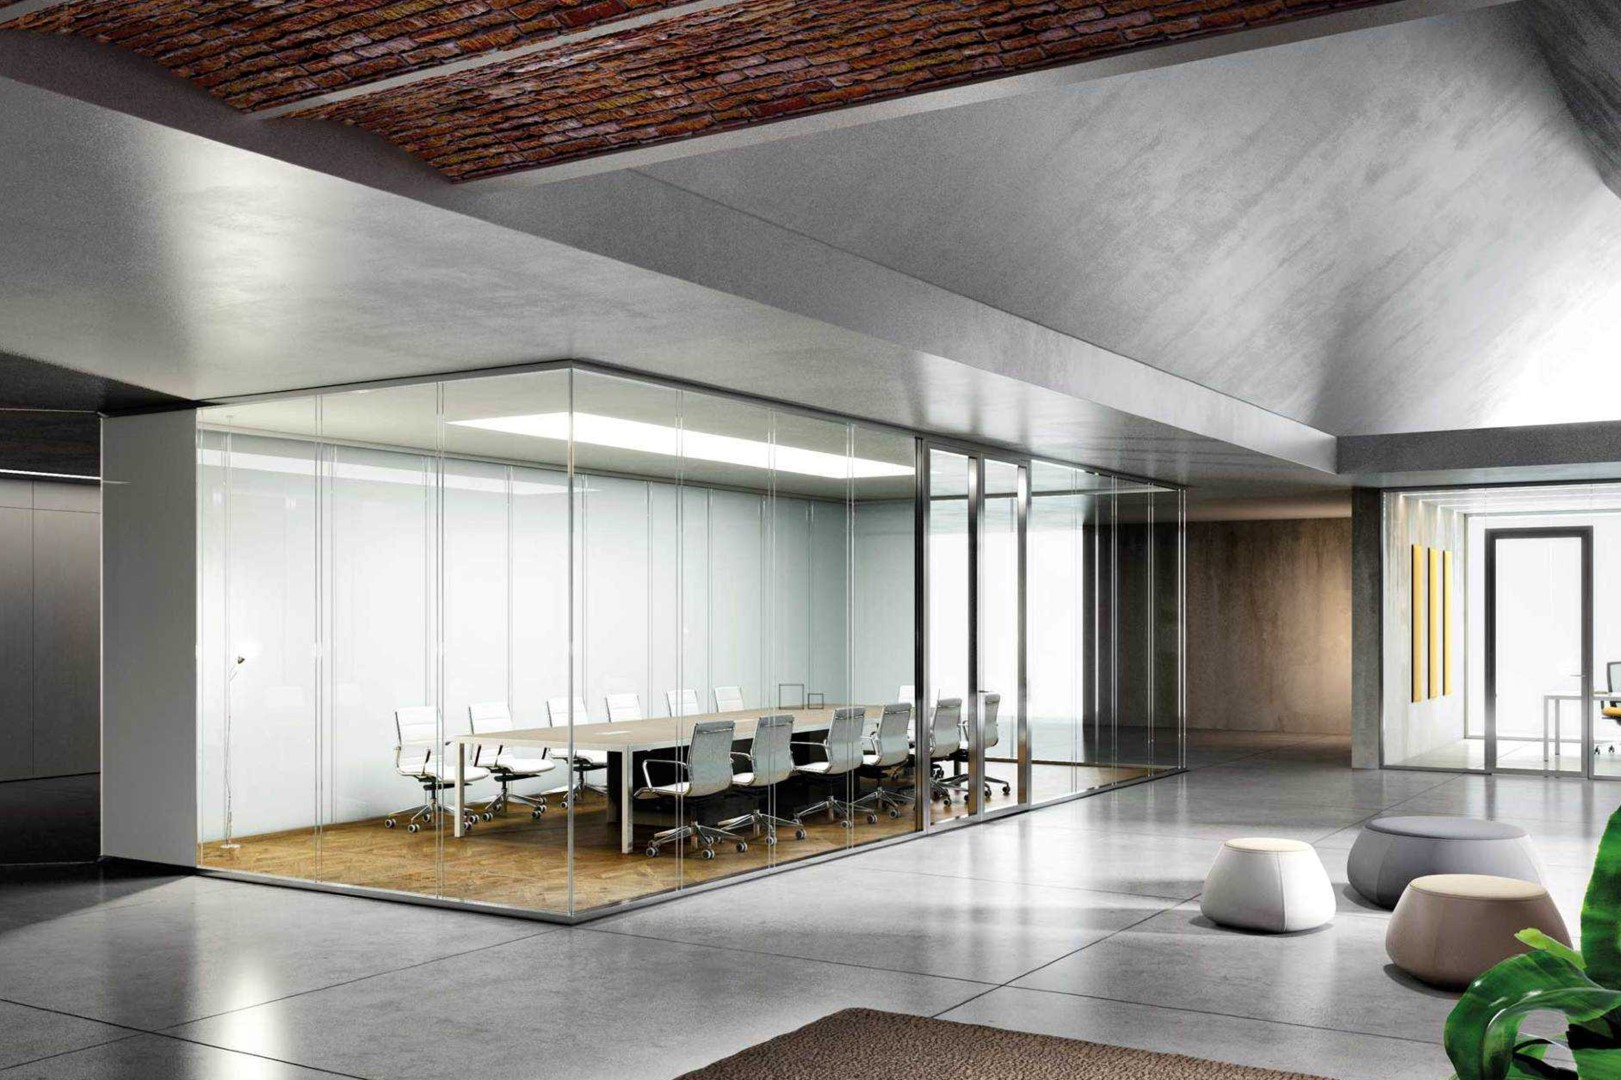 furniture_0015_6.partition wall_glass_silent wall_office furniture (2)